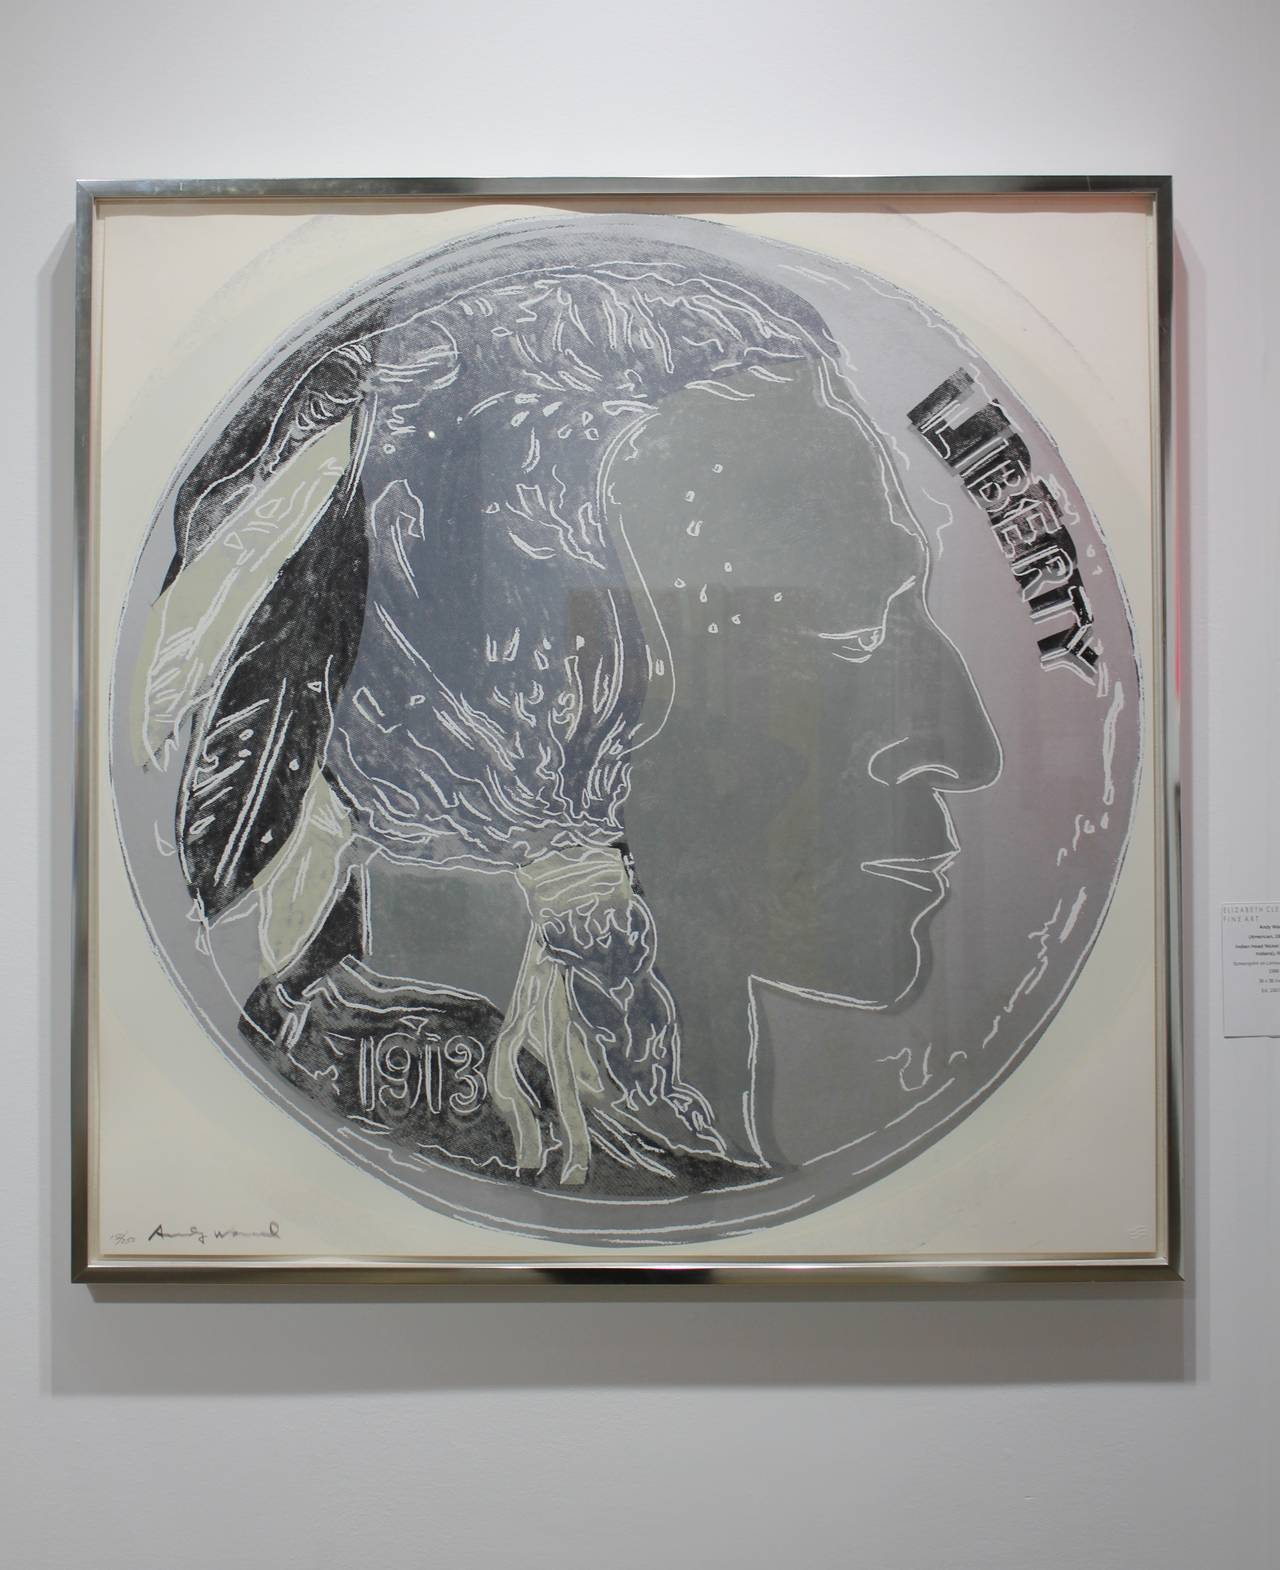 Indian Head Nickel, IIB. 385 - Print by Andy Warhol